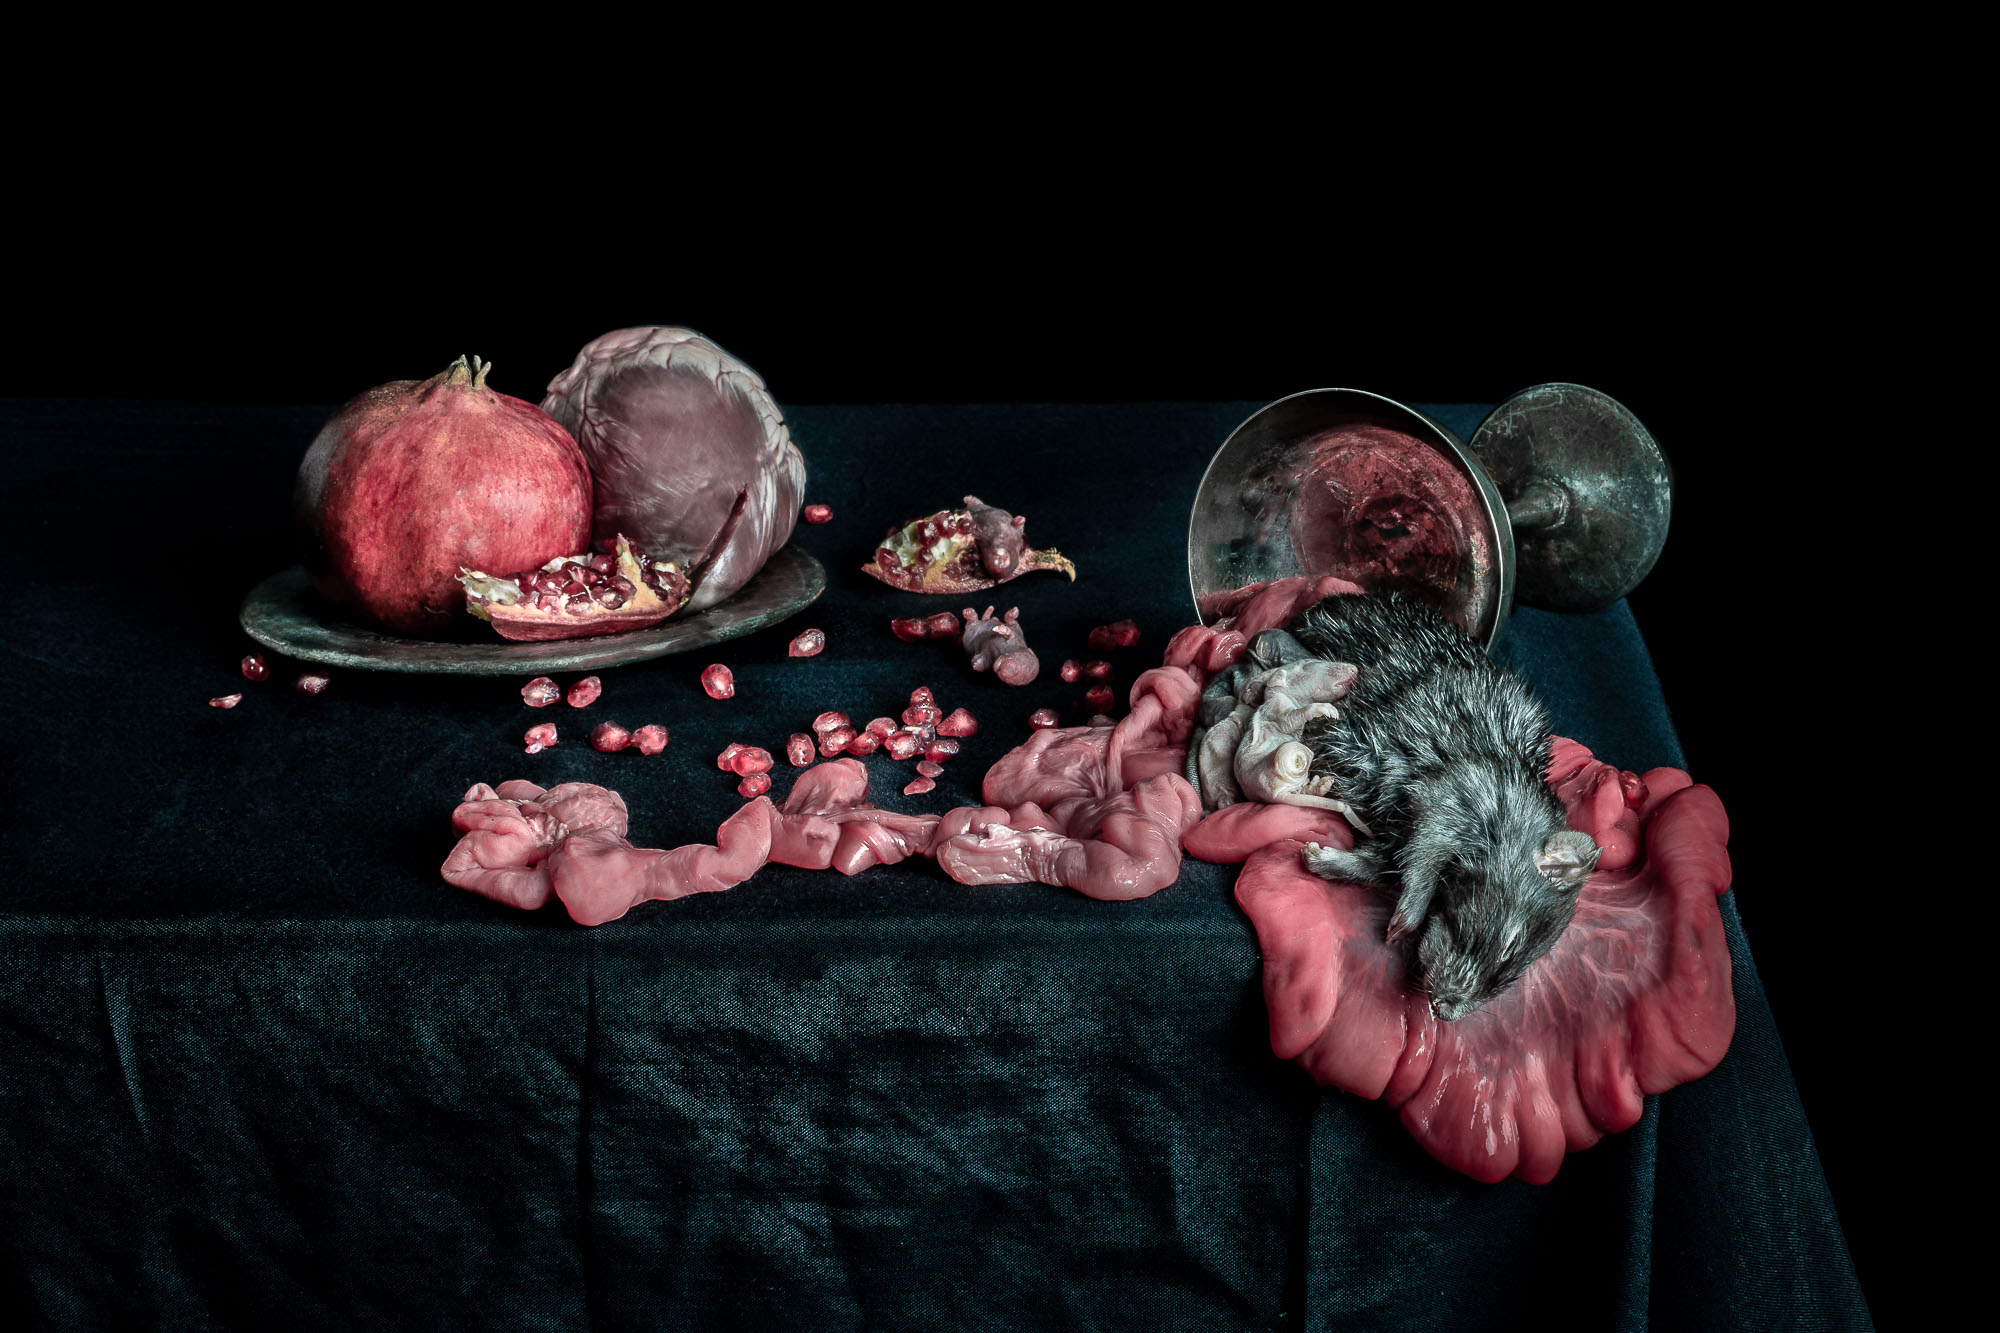 neal-auch-still-life-with-pomegranate-2.jpg